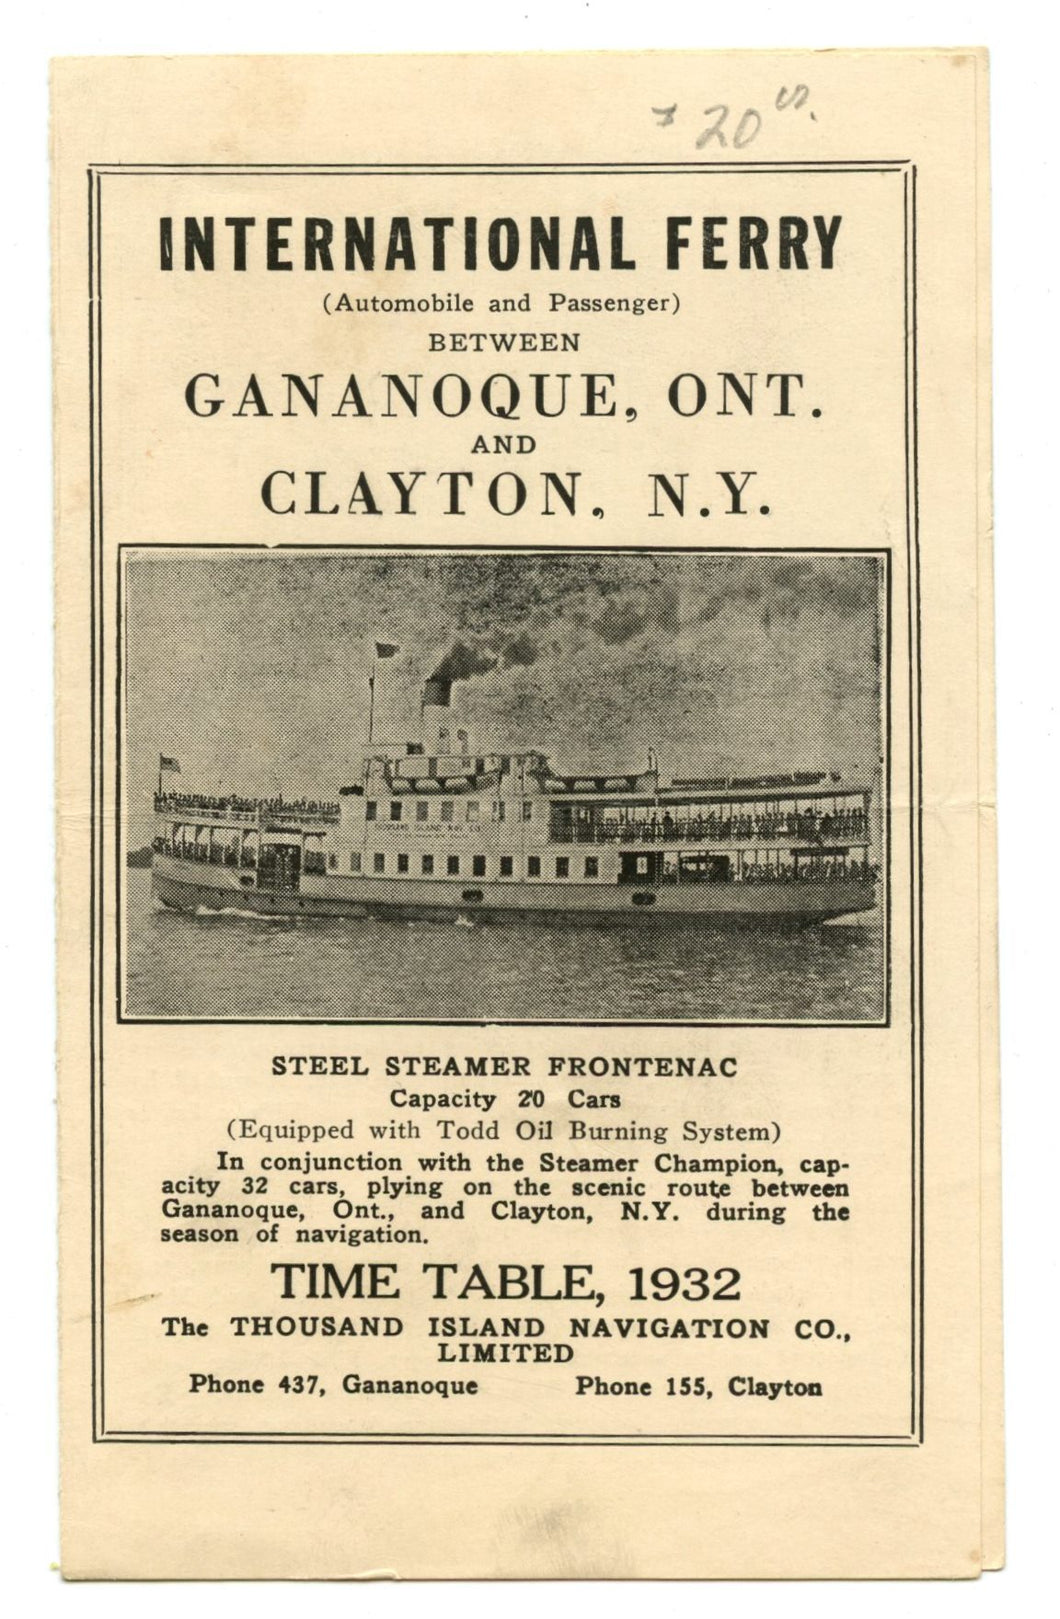 International Ferry Time Table, Gananoque, Ont. and Clayton, N.Y., 1932